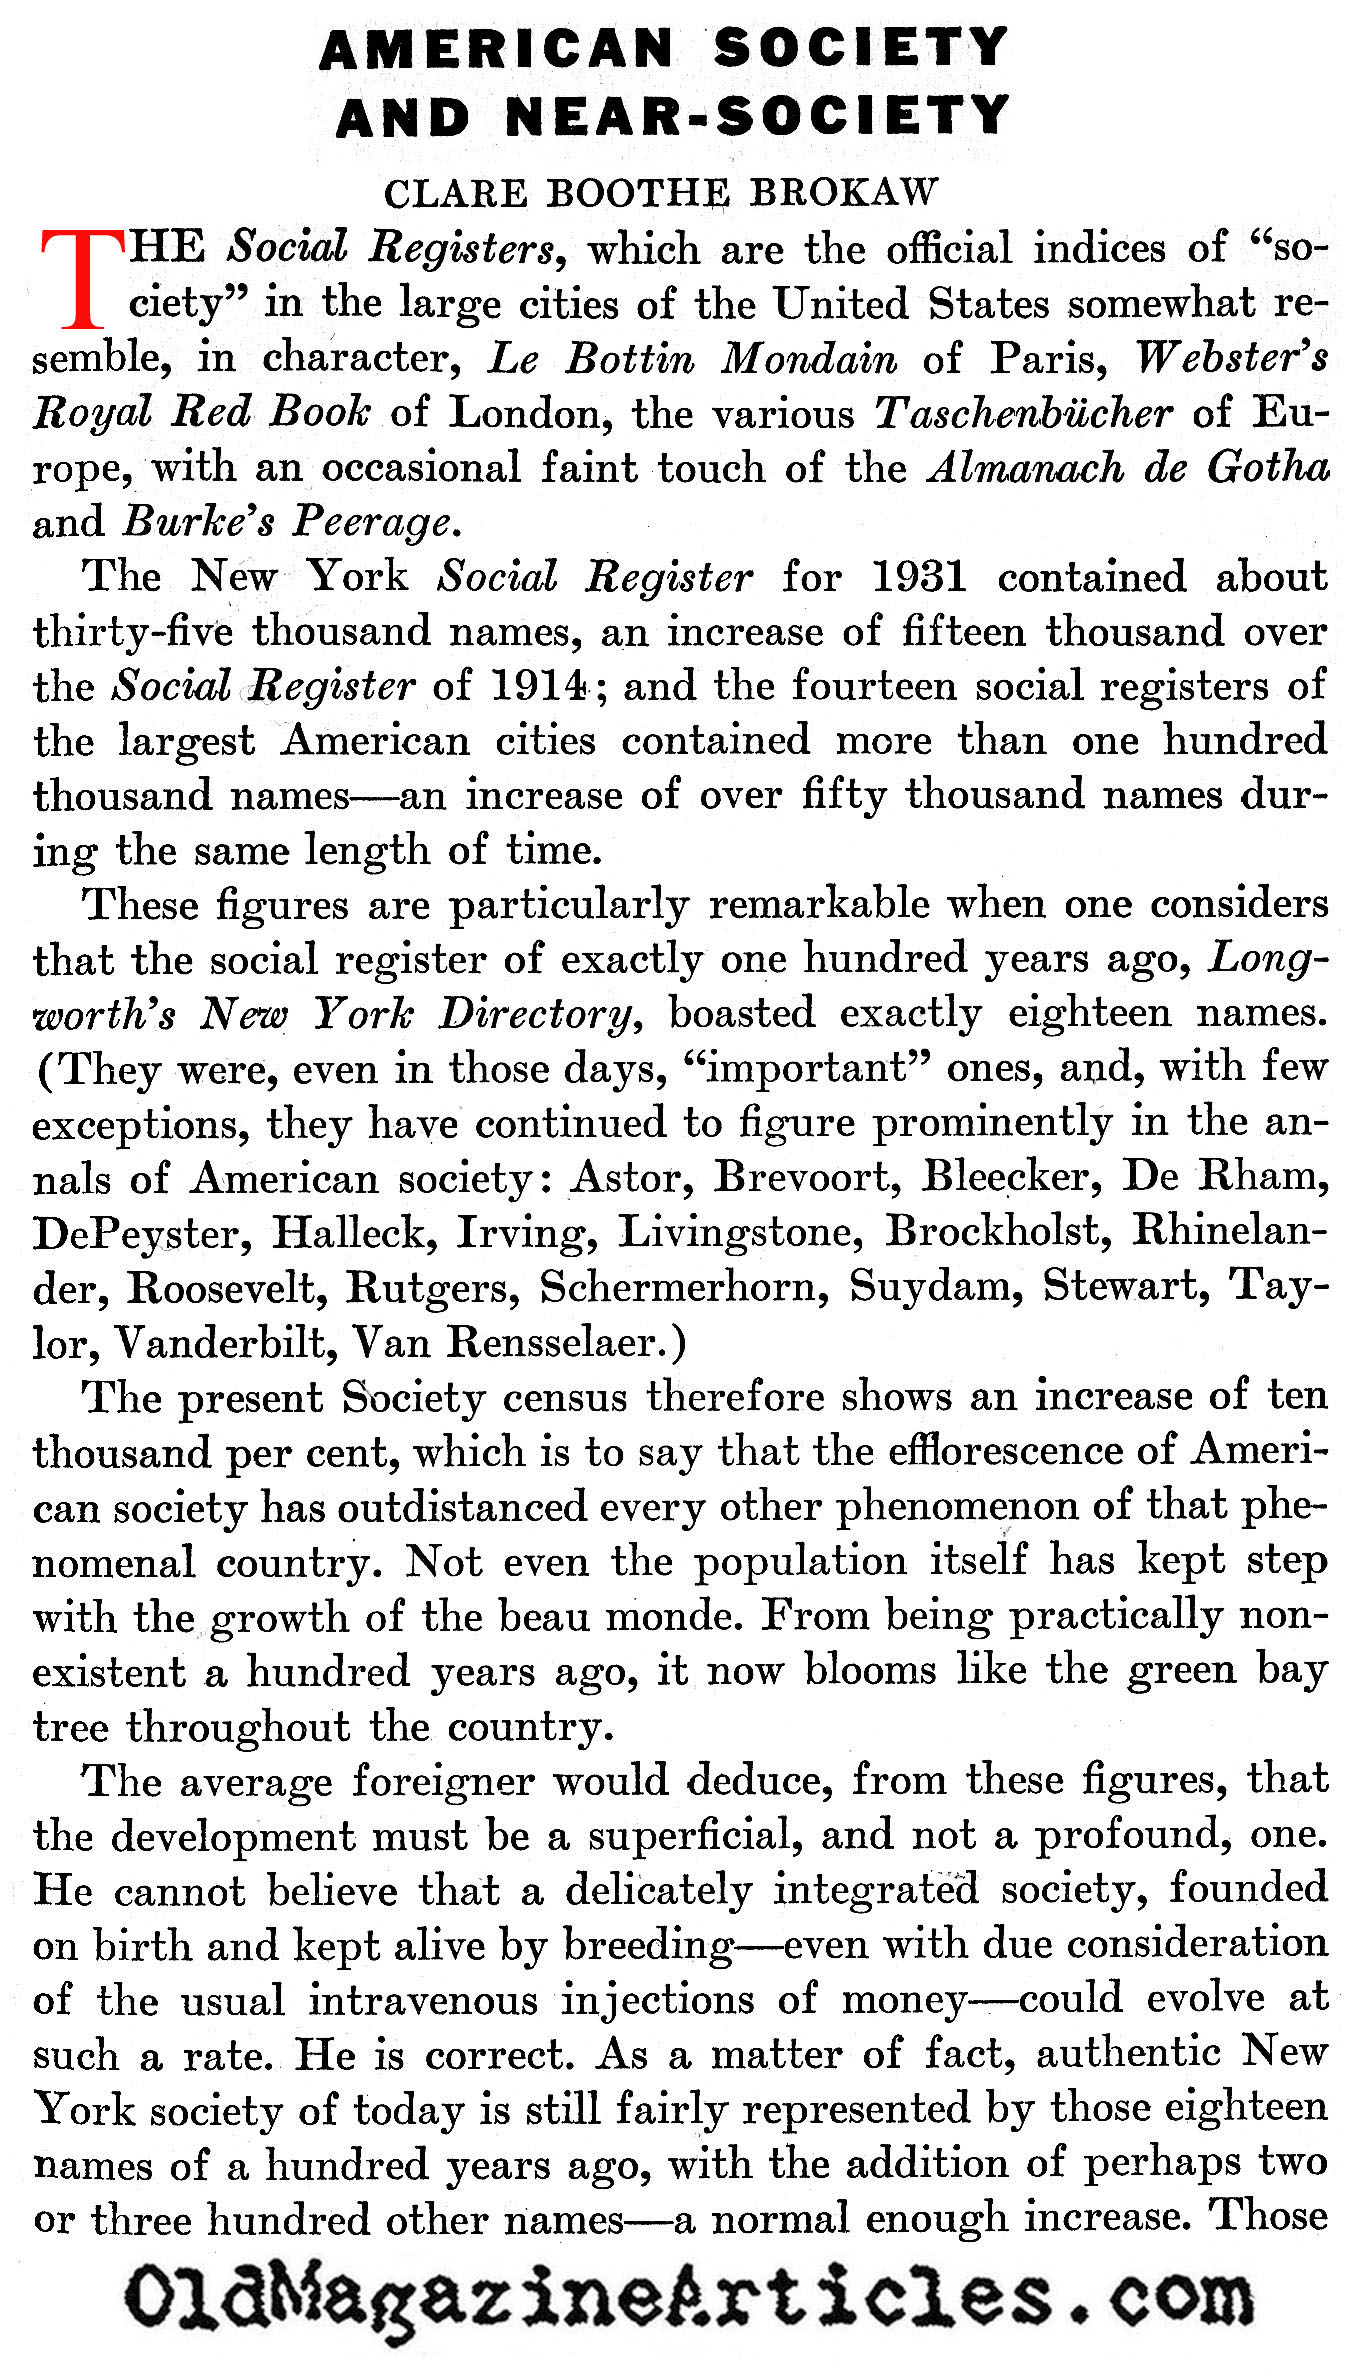 The New York Social Register (America, 1932)